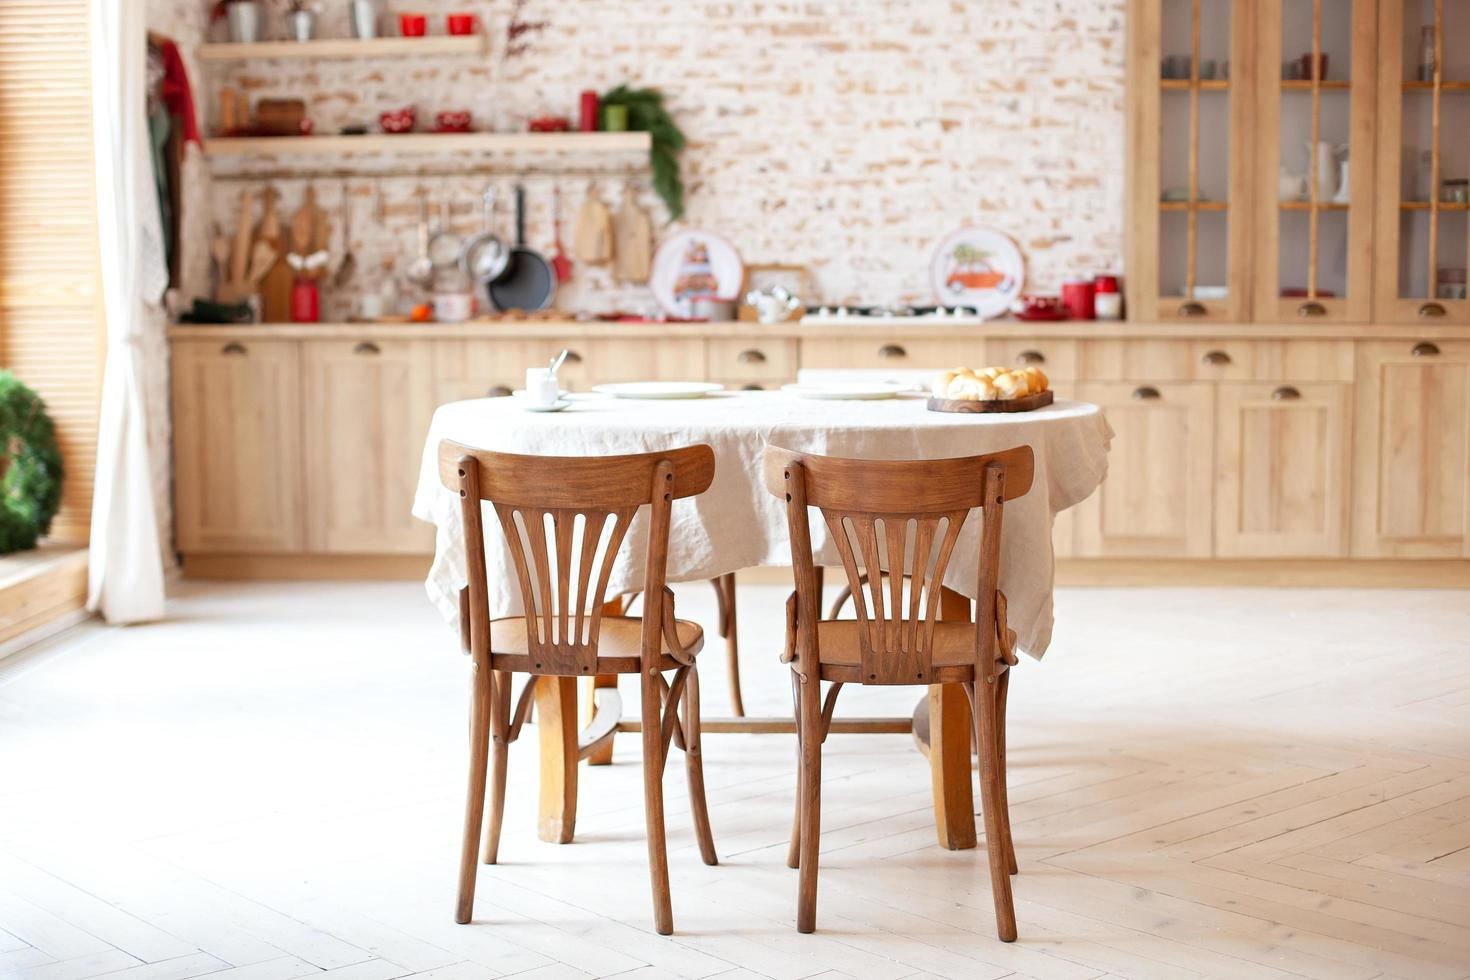 Stylish kitchen interior with wooden table and chairs photo